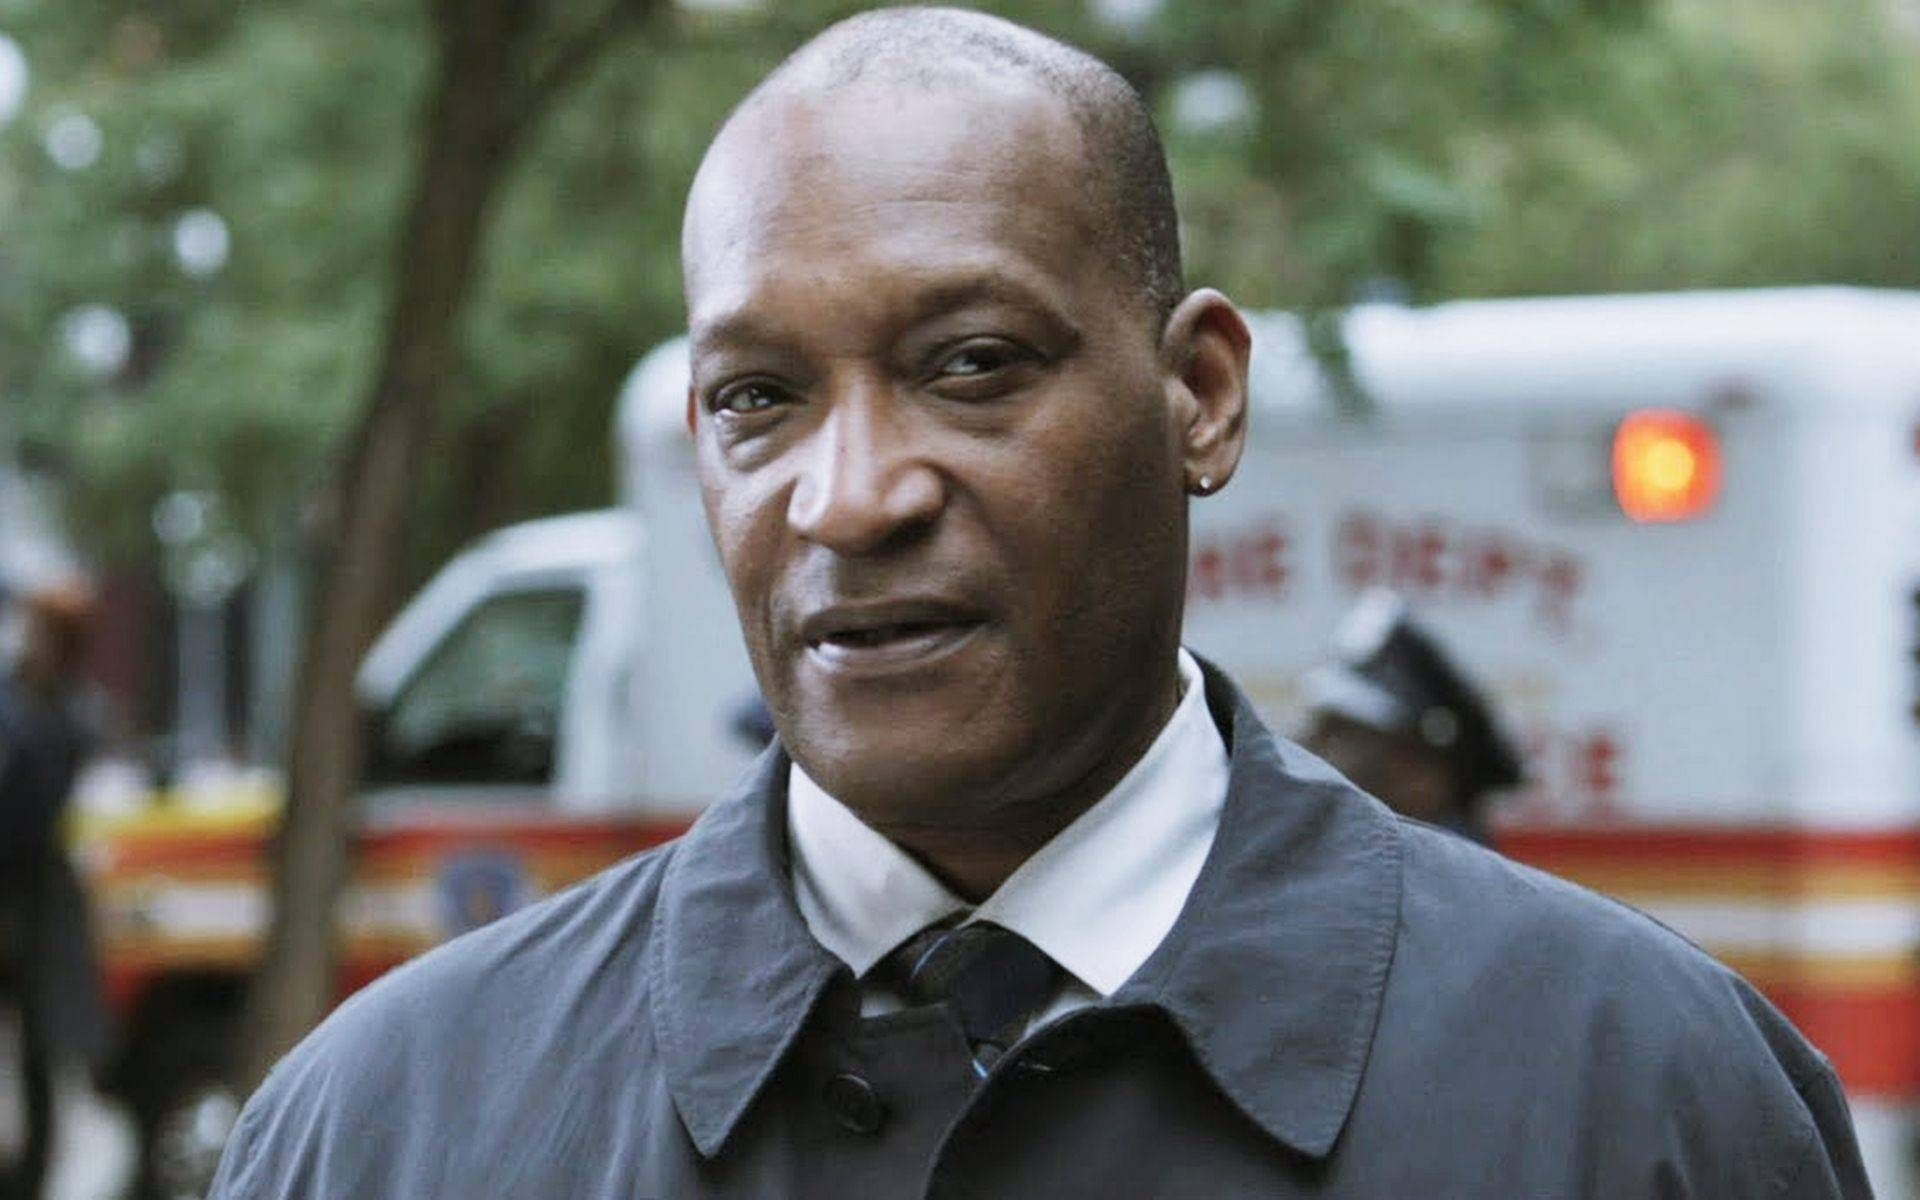 The 66-year old son of father (?) and mother(?) Tony Todd in 2021 photo. Tony Todd earned a  million dollar salary - leaving the net worth at  million in 2021